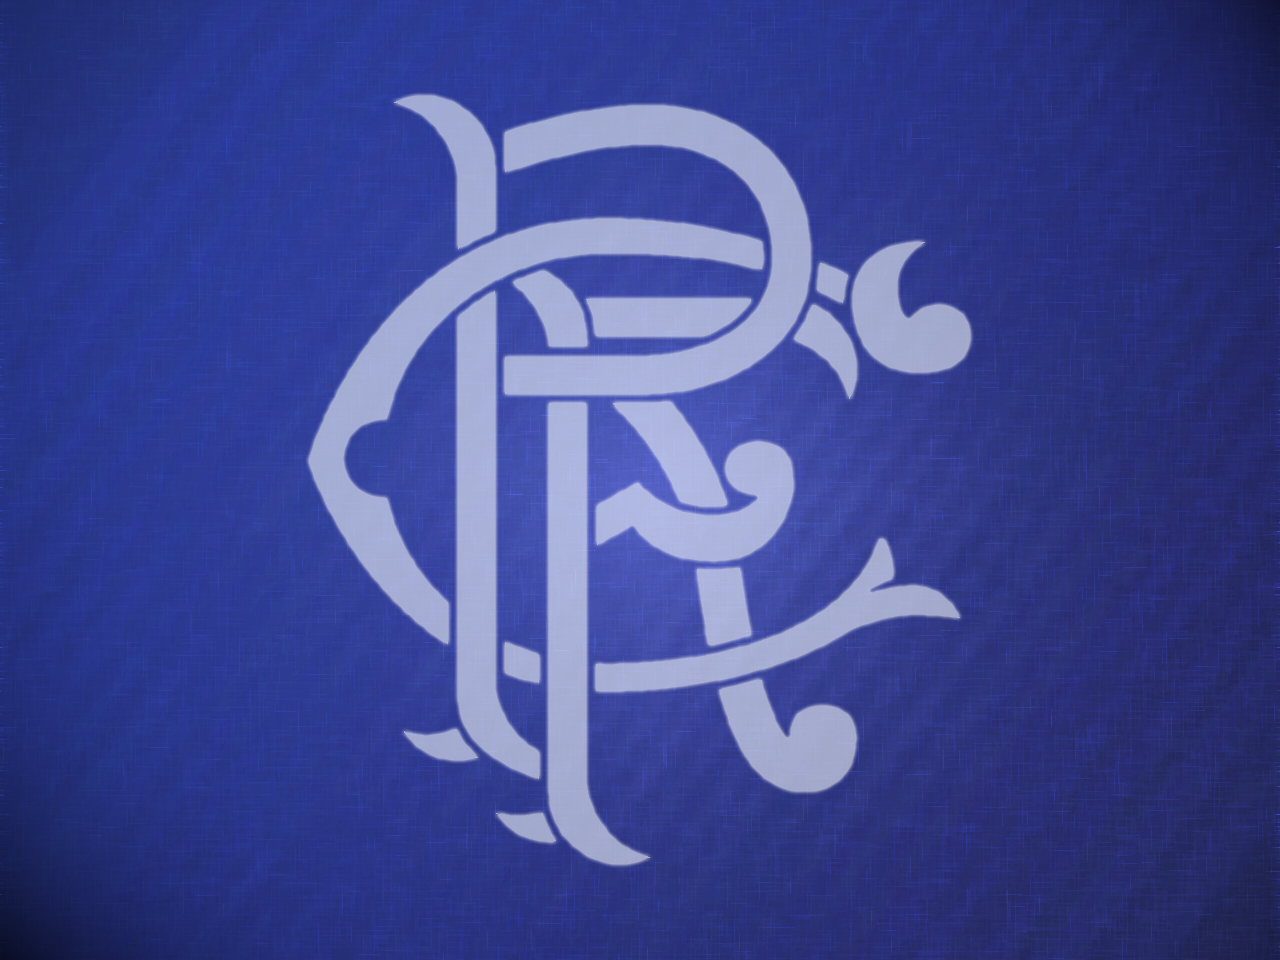 Rangers Glasgow Logo History Wallpaper 1280x960 Full HD Wallpapers 1280x960